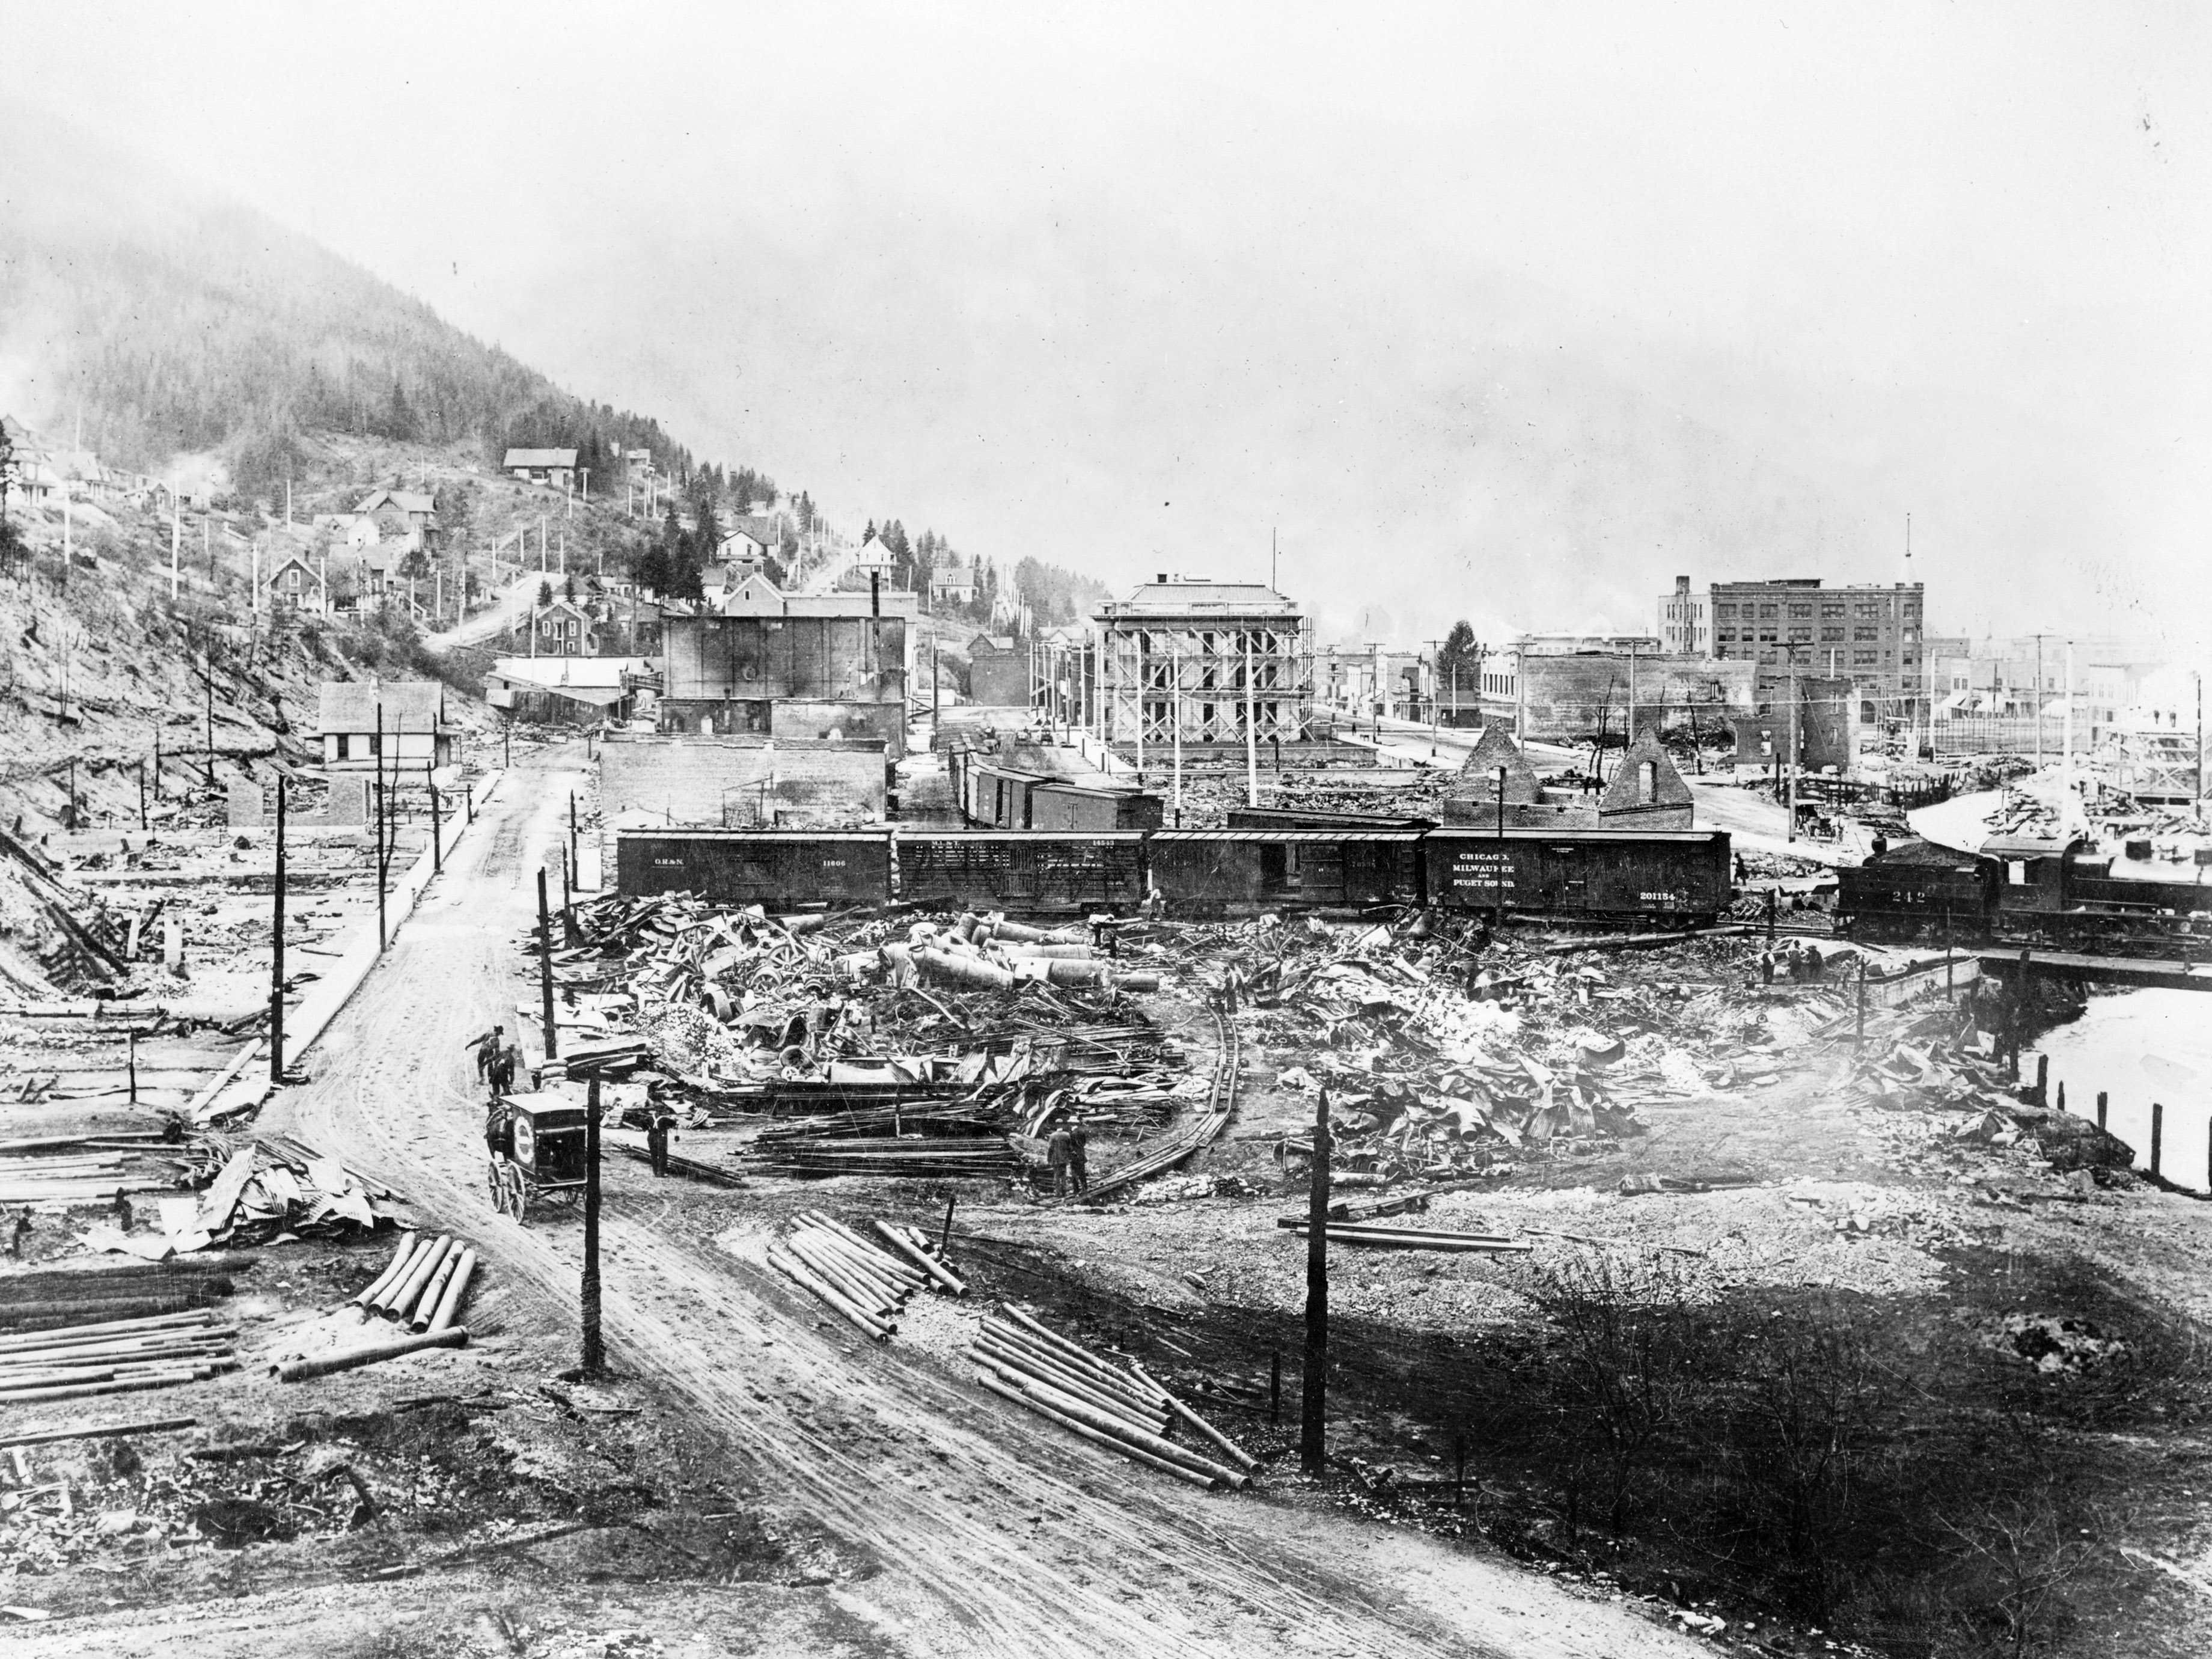 The Great Fire of 1910